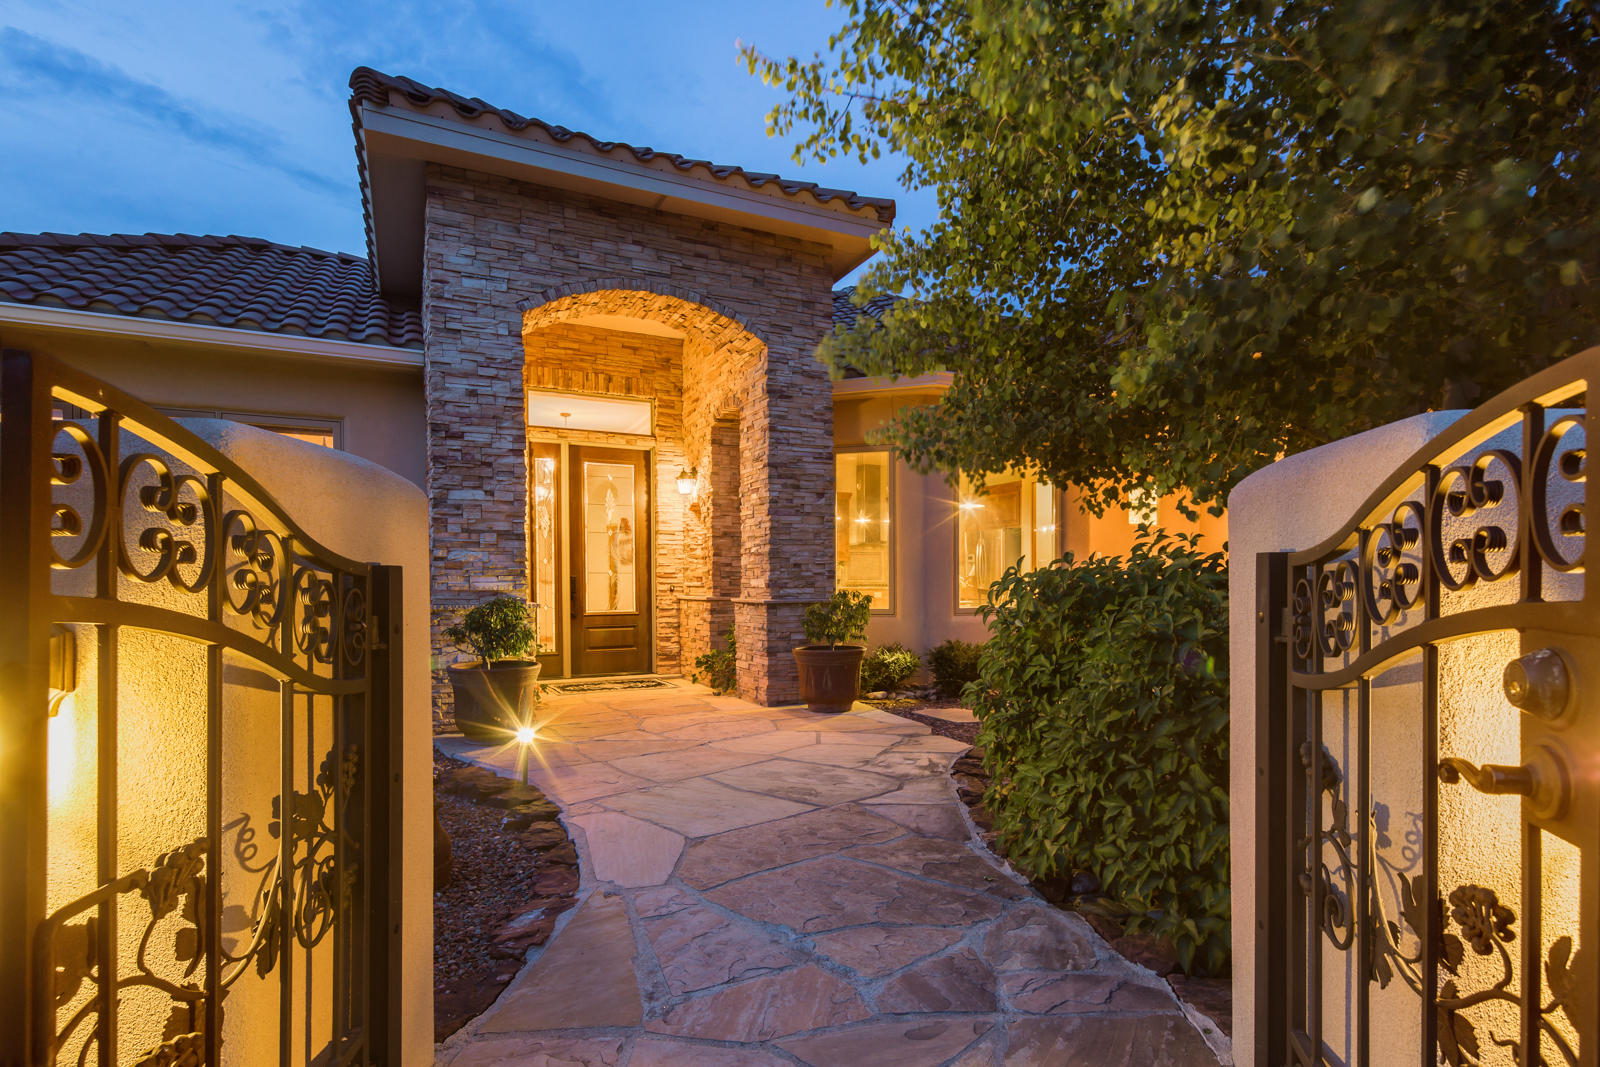 18 Coyote Canyon,Tijeras,New Mexico,United States 87059,4 Bedrooms Bedrooms,3 BathroomsBathrooms,Residential,Coyote Canyon,924552